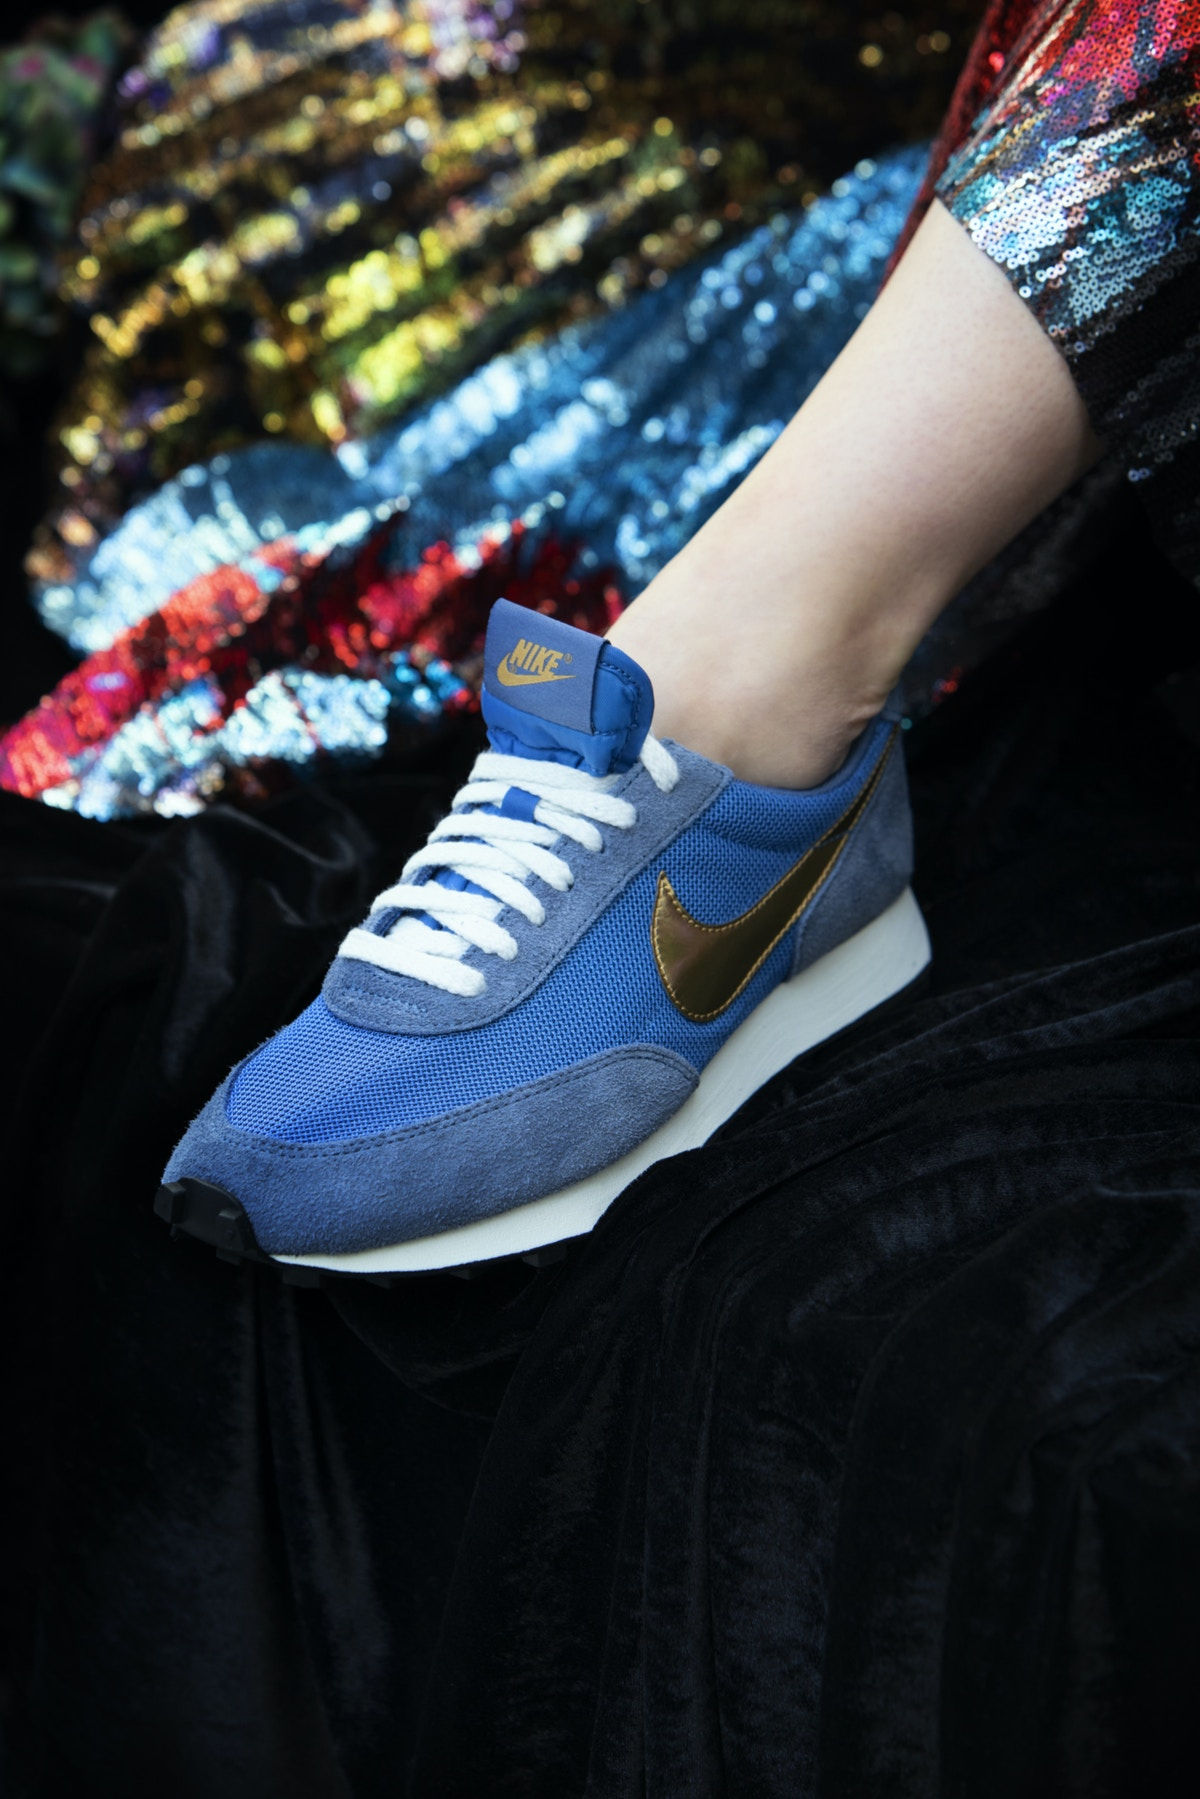 Close up of blue Nike trainers with gold detailing